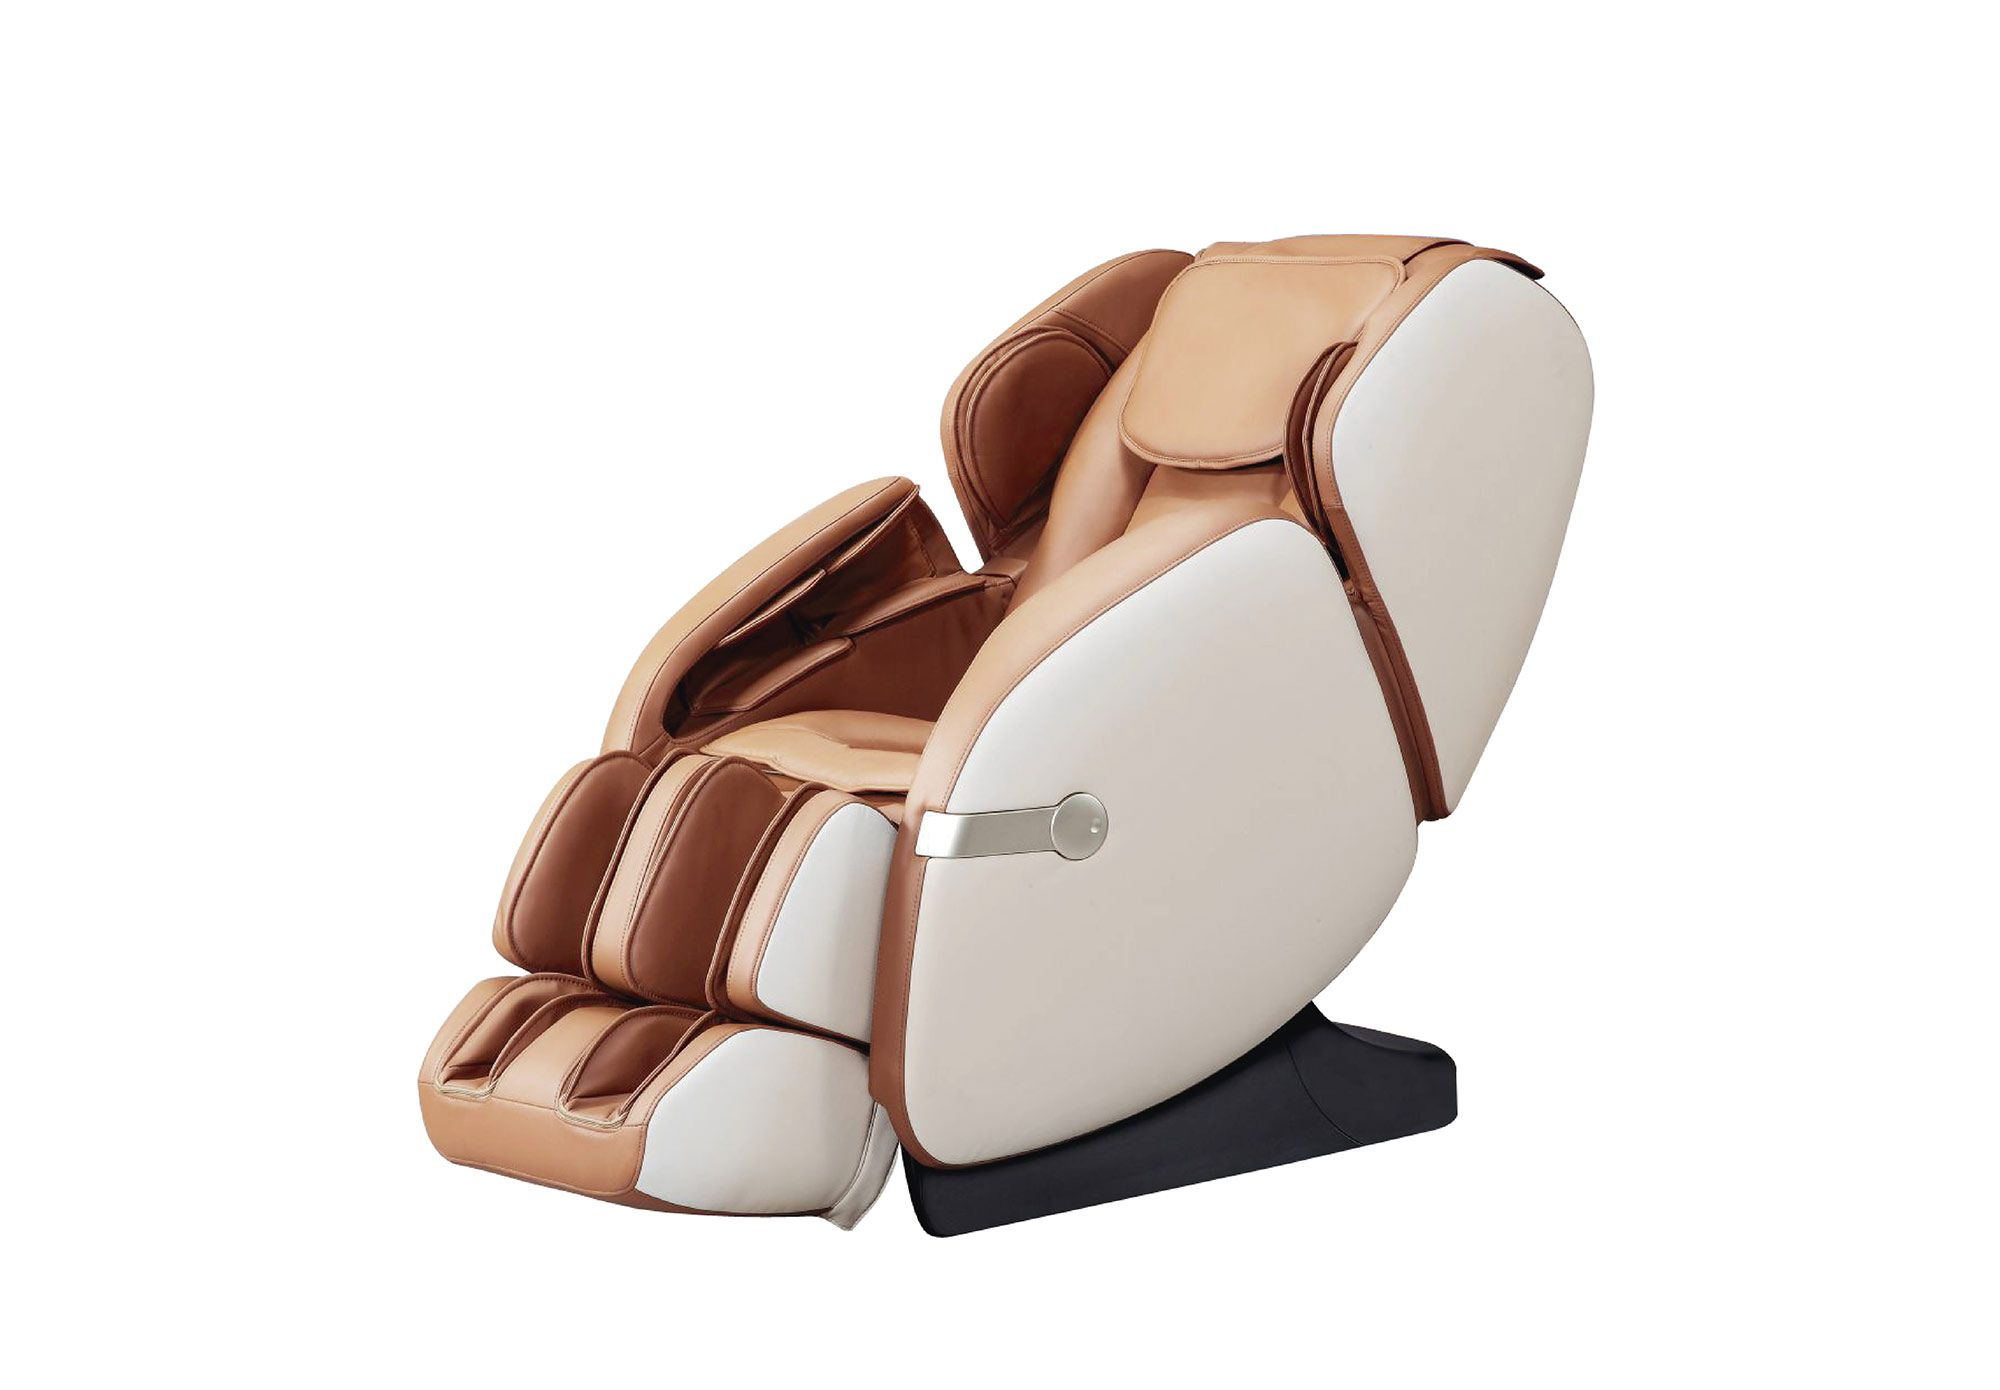 Ergo-Pedic Zero G Massage Chair